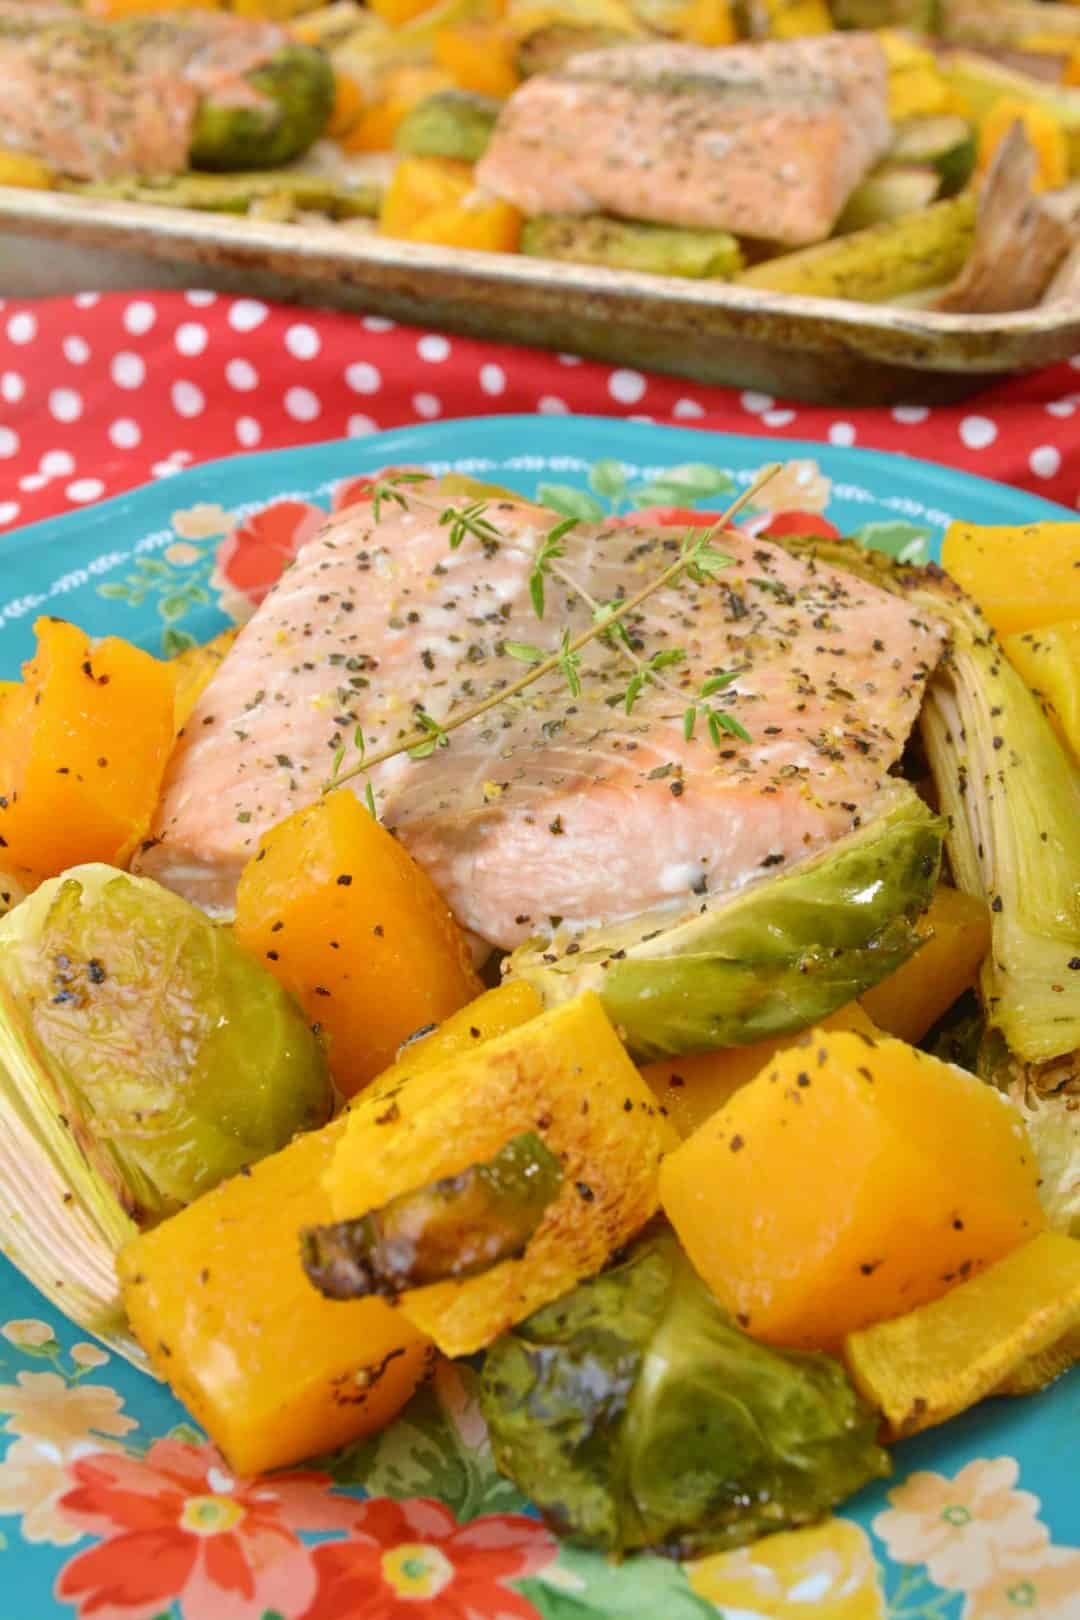 salmon with baked vegetables on a plate